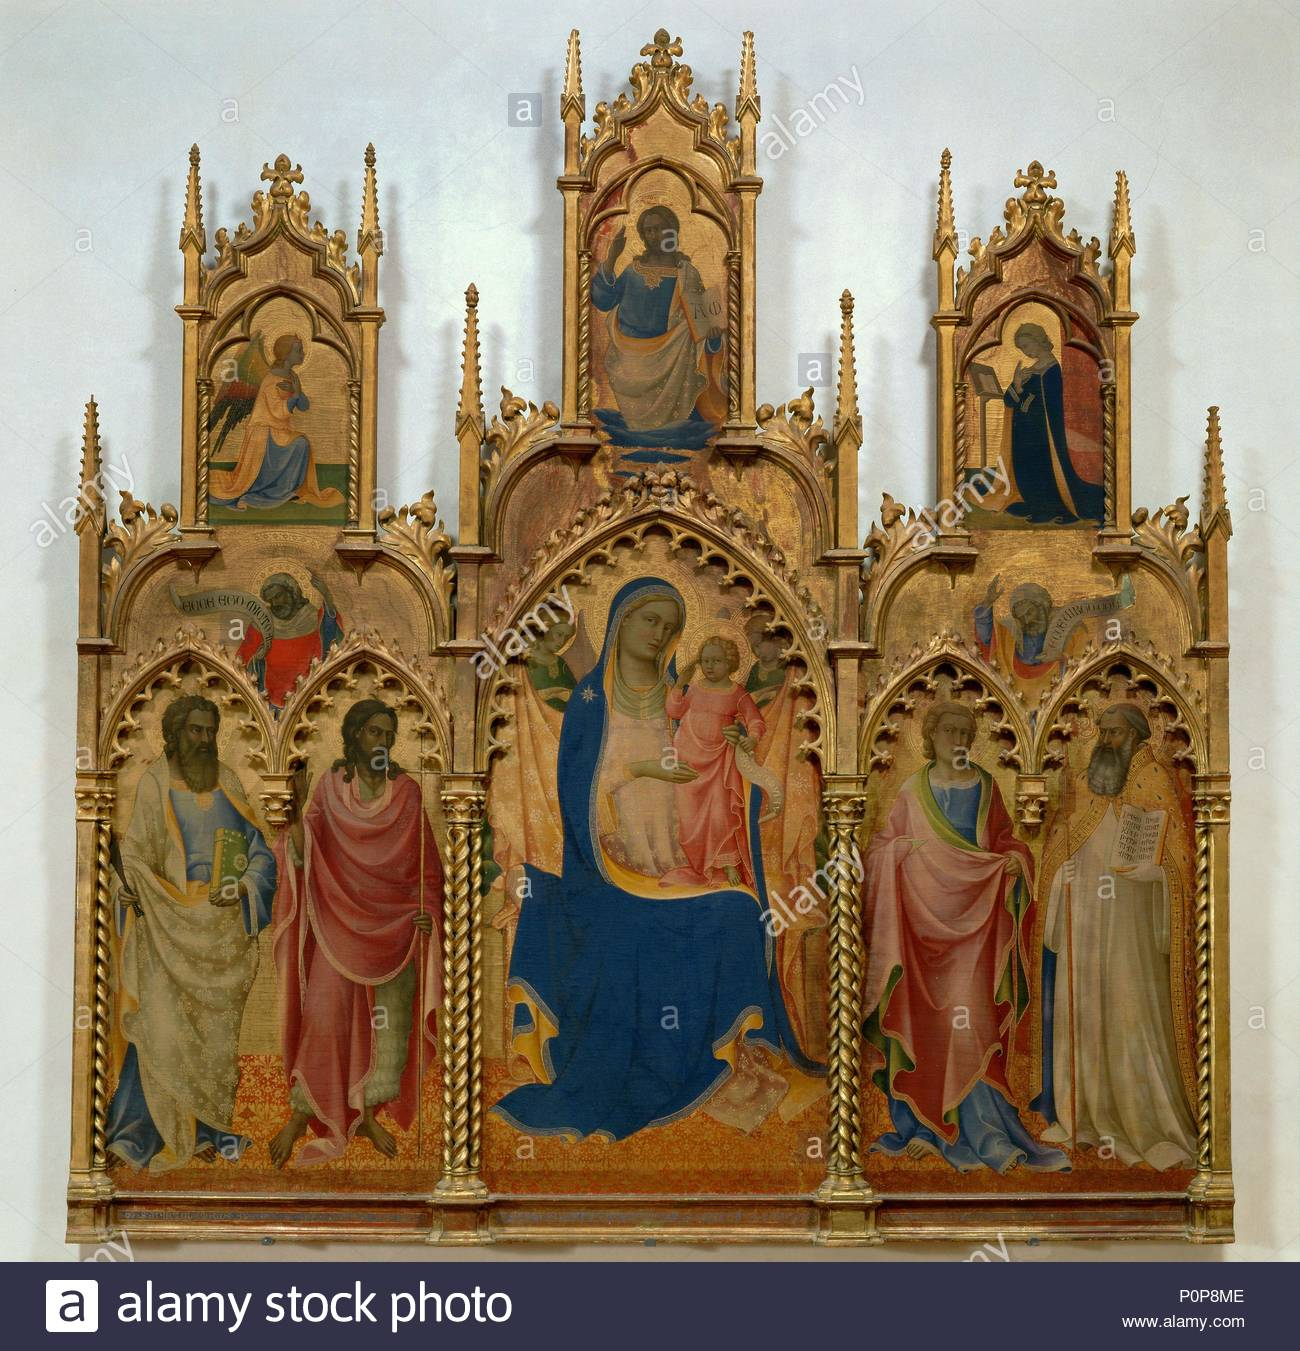 Painted 1410 Tempera on wood,274 x 259 cm Inv.468. Author: Lorenzo Monaco  (c. 1370-c. 1423). Location: Galleria dell'Accademia, Florence, Italy.